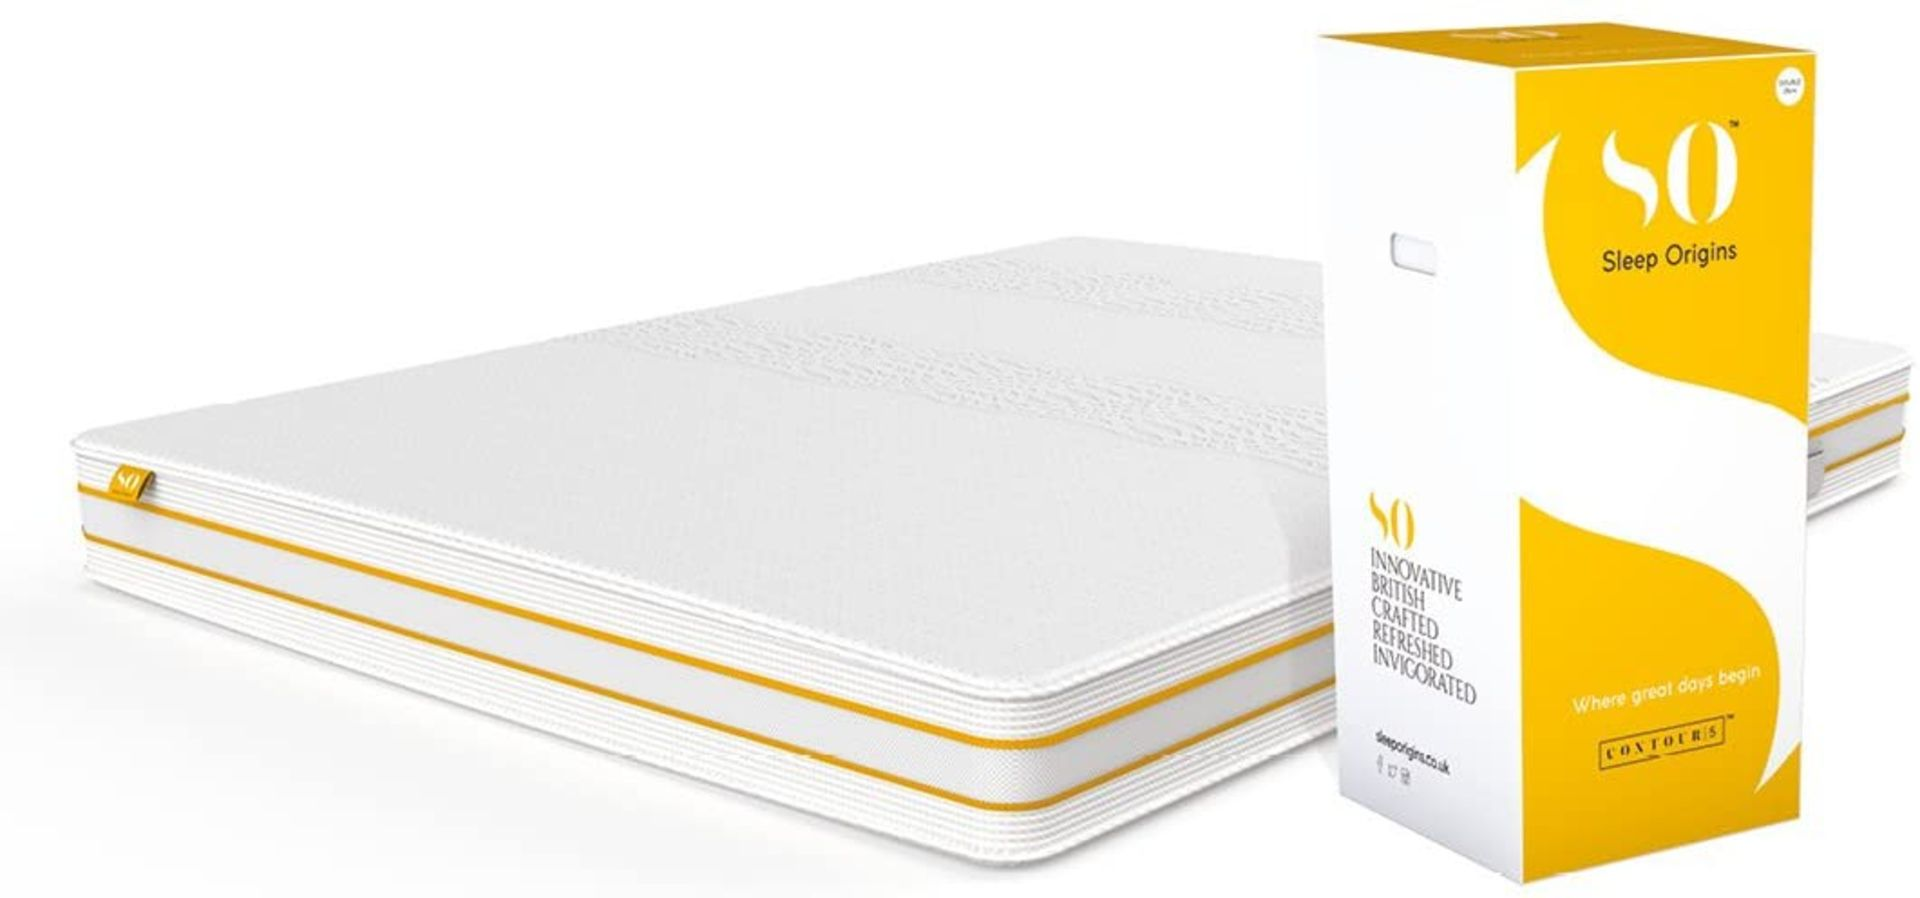   1X   SLEEP ORIGINS KING SIZE 15CM DEEP MATTRESS   NEW AND BOXED  NO ONLINE RESALE   RRP £499  